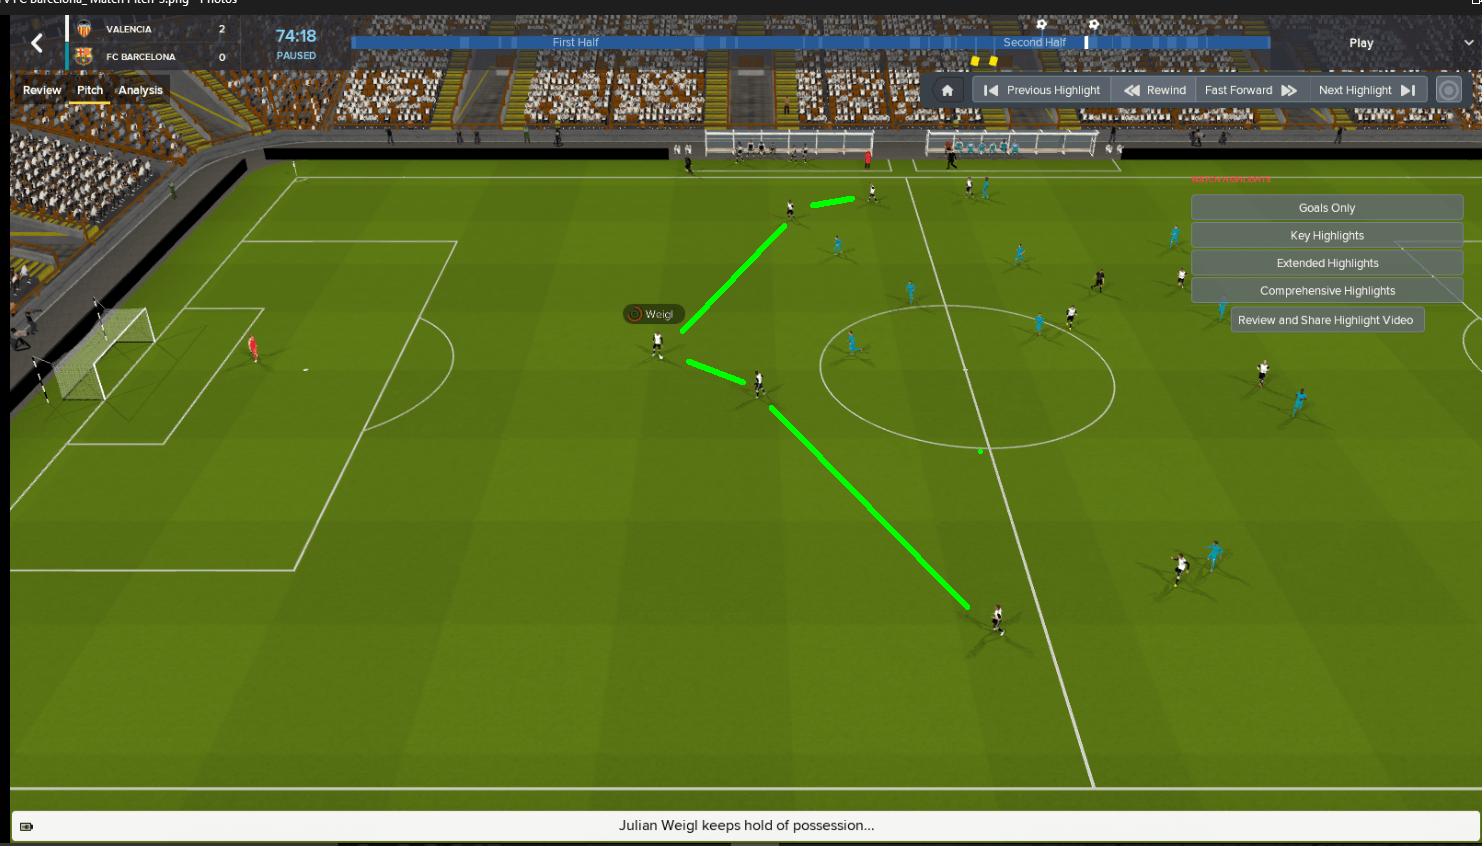 The movement of the deep lying playmaker